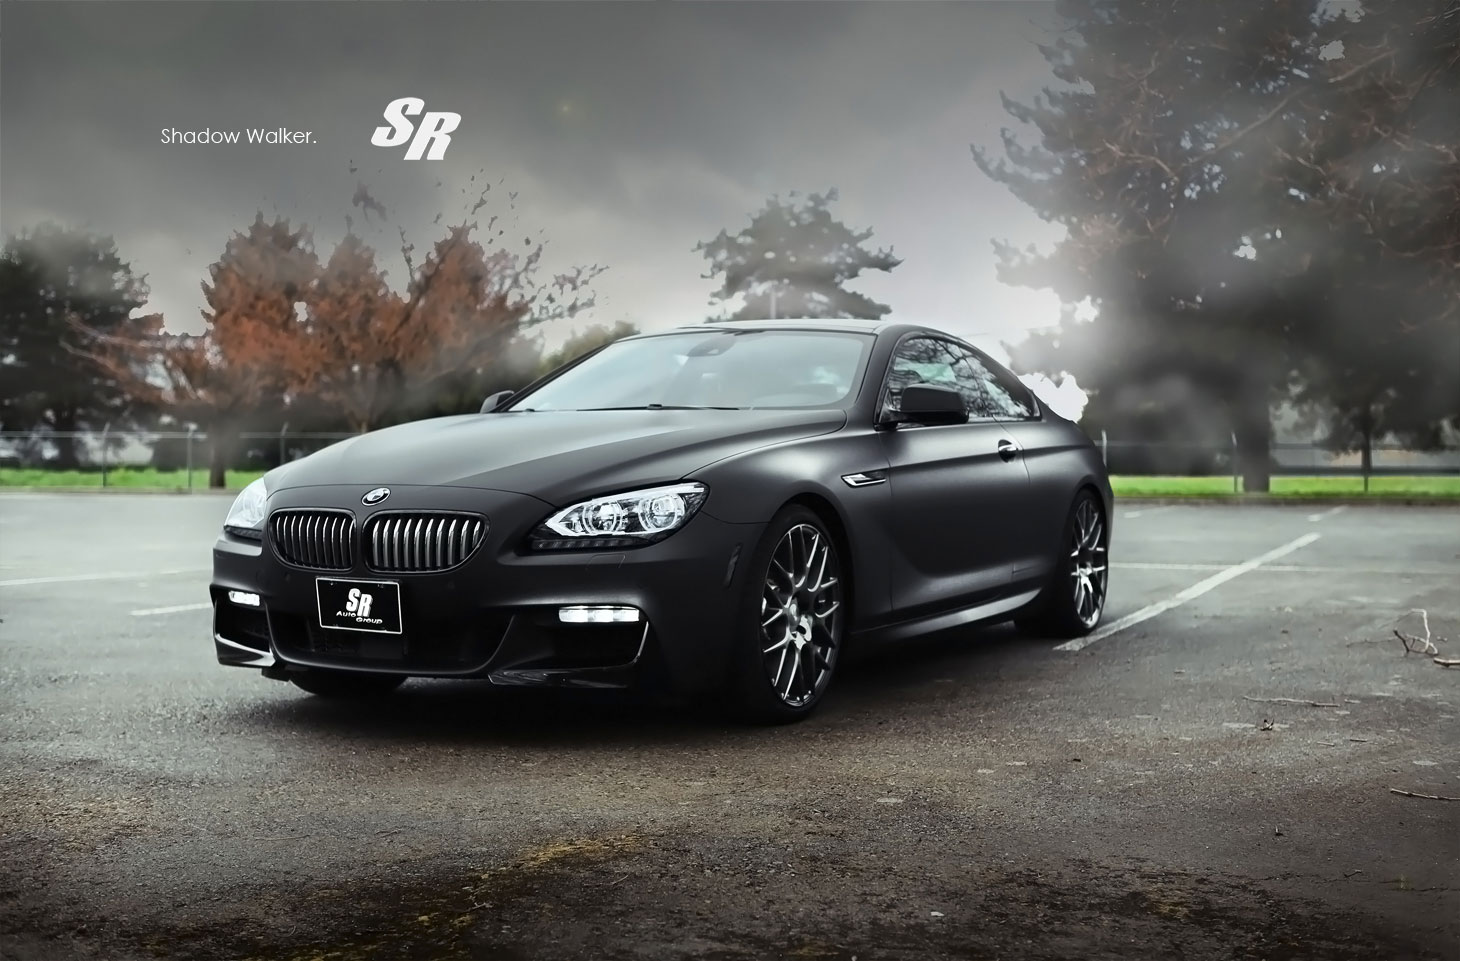 BMW 650i jako Shadow Walker 8